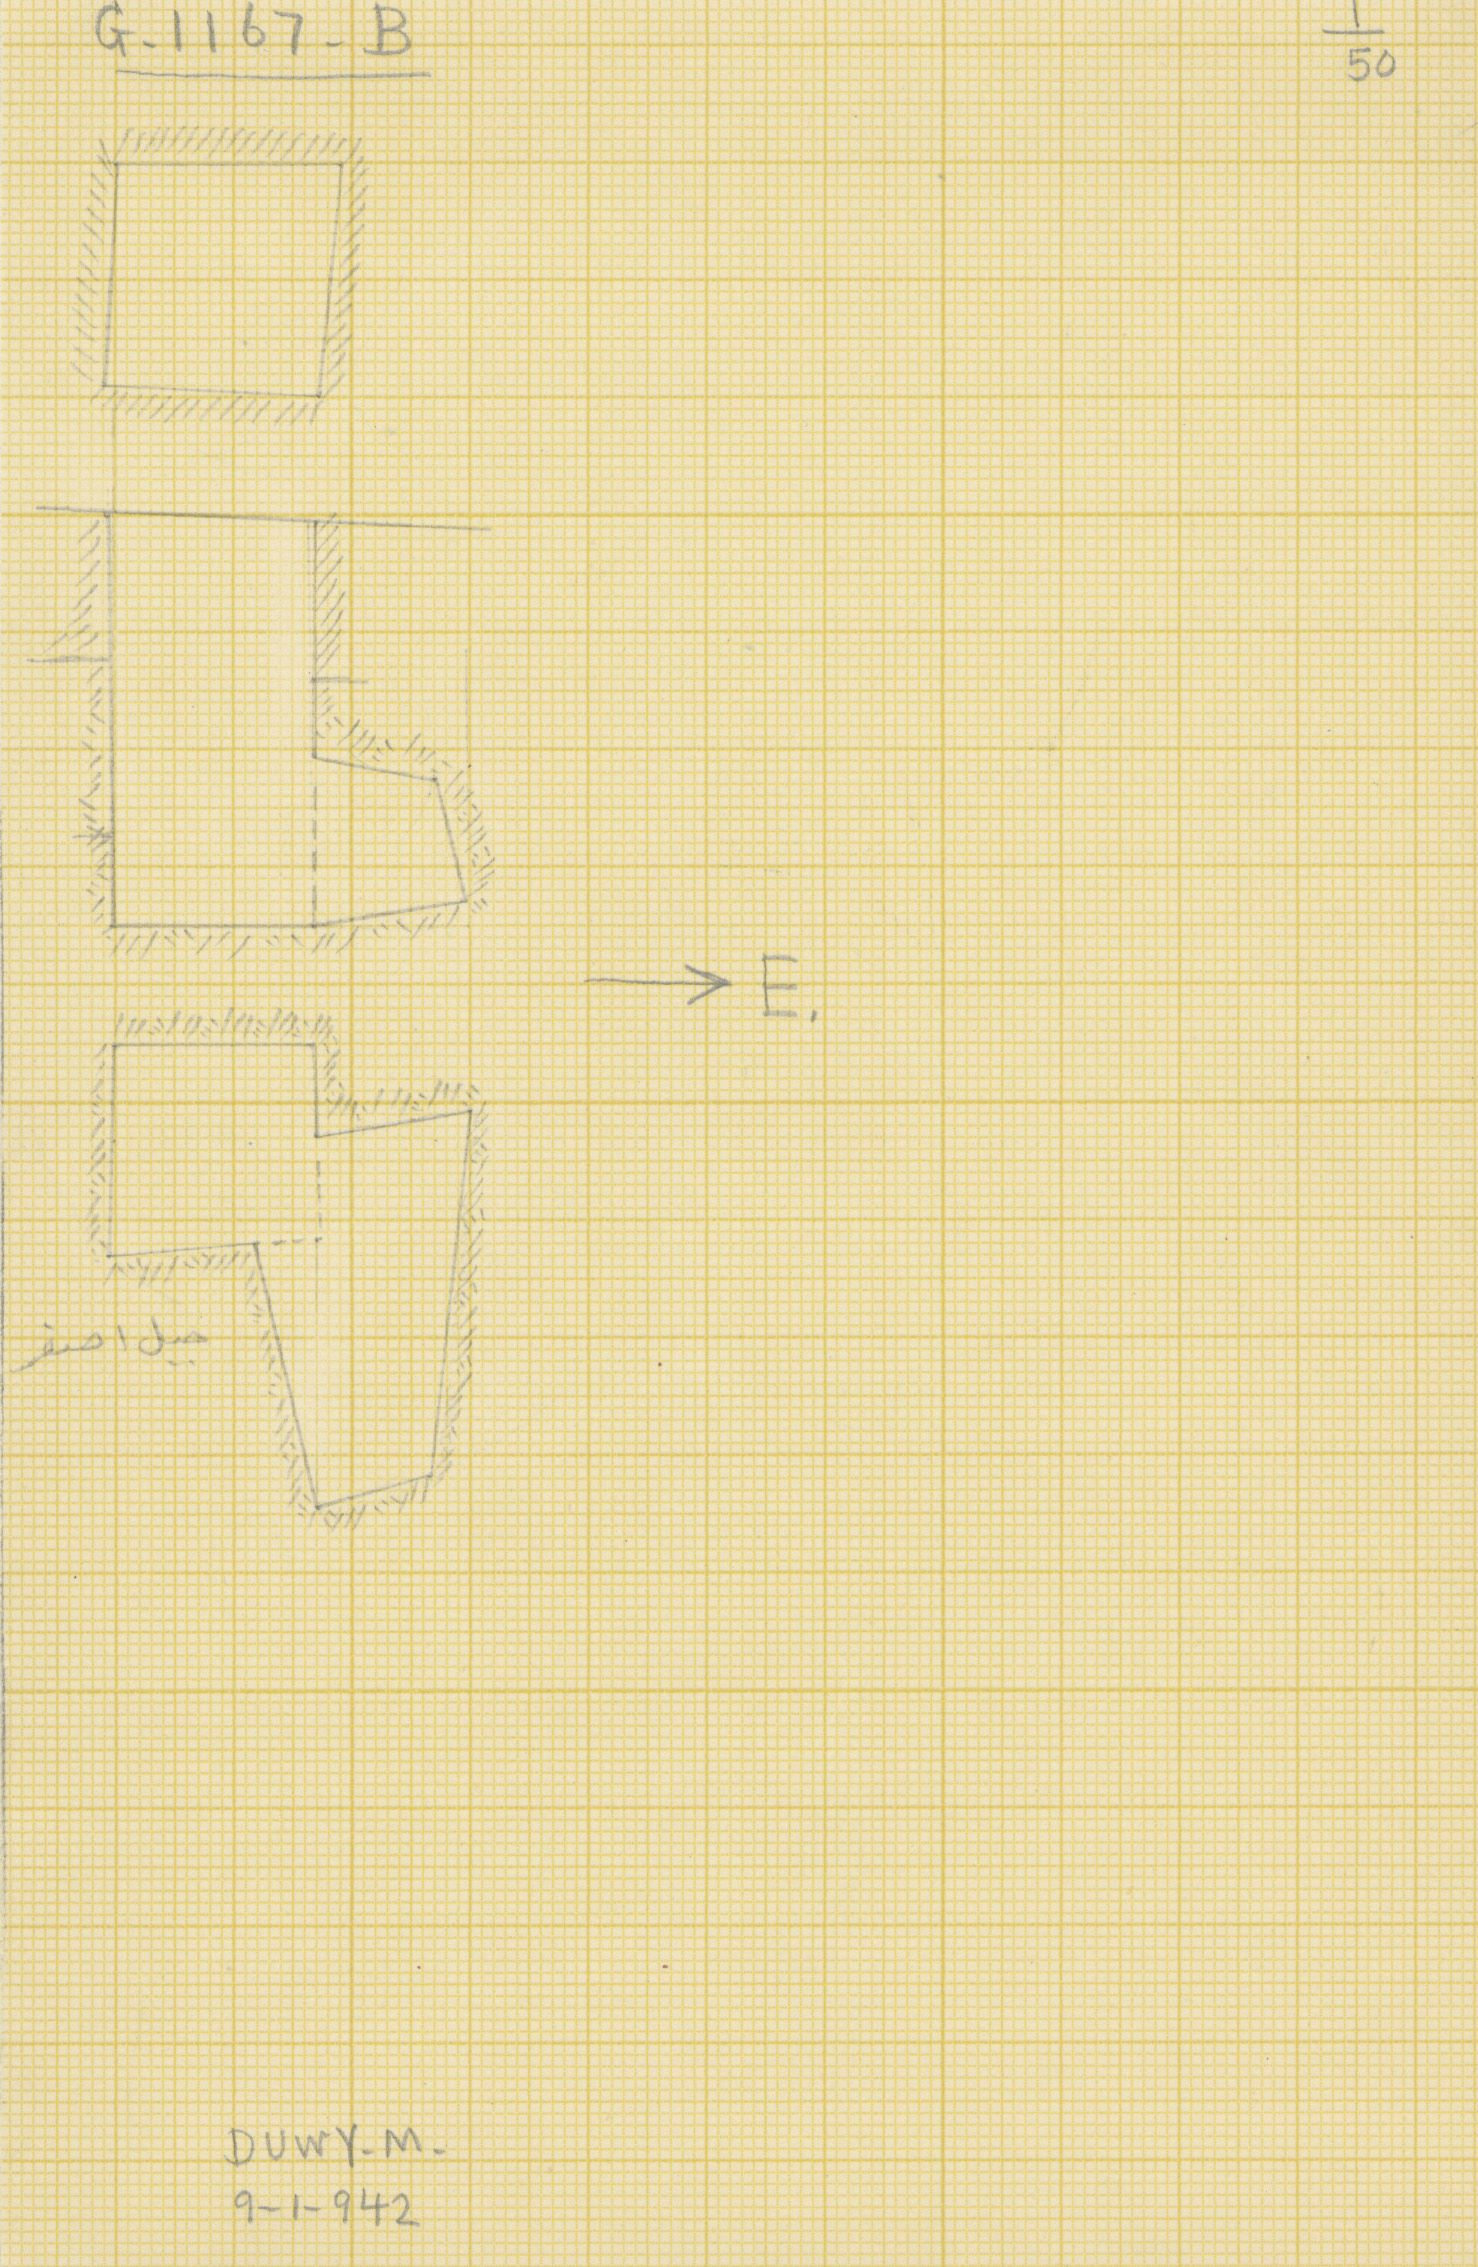 Maps and plans: G 1167, Shaft B